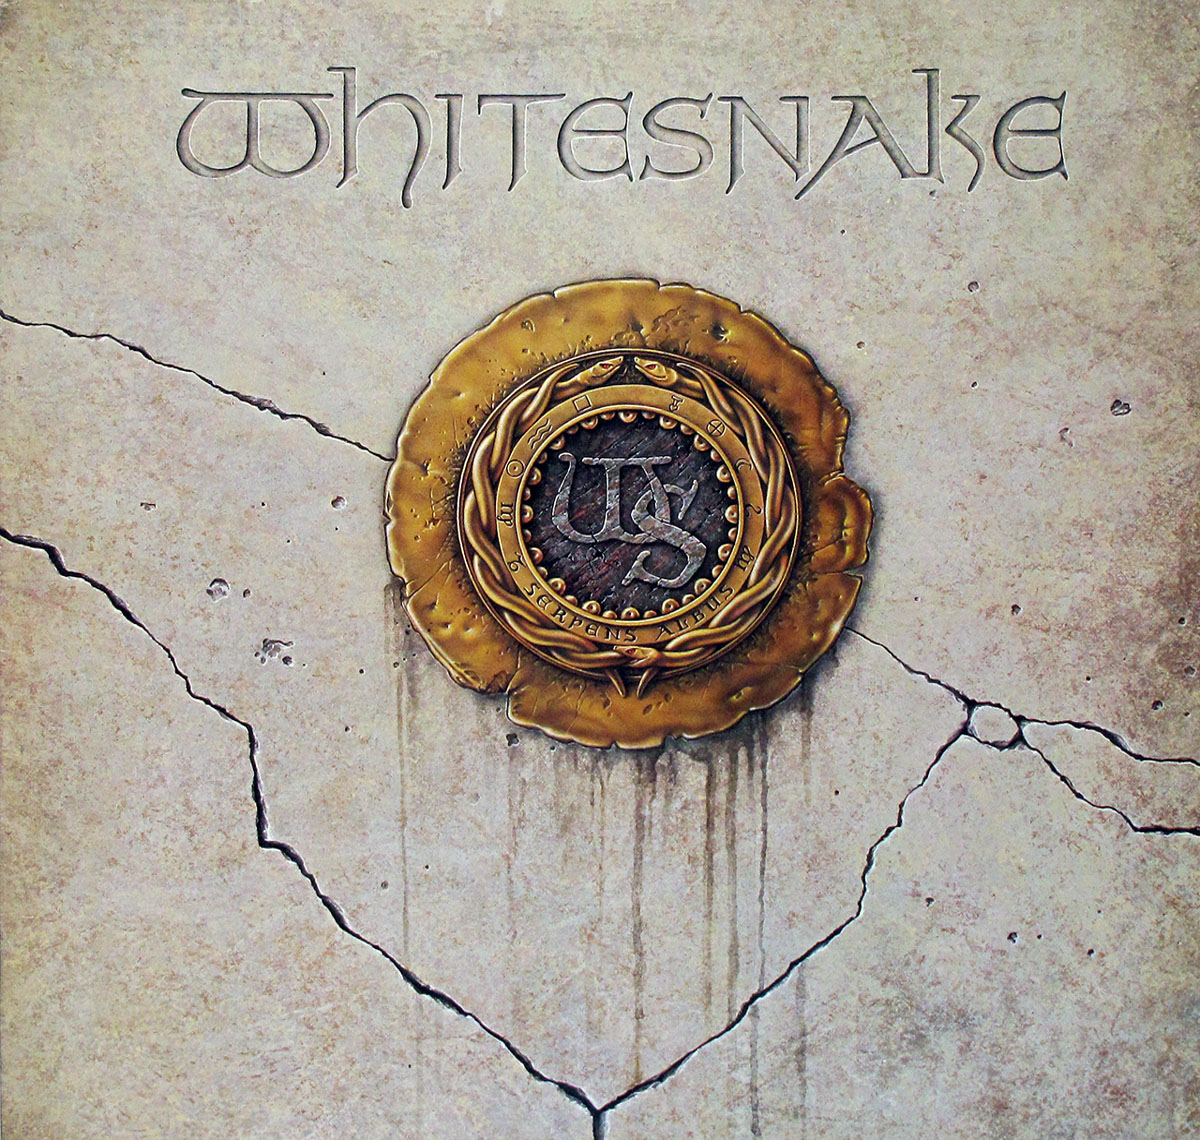 High Resolution Photos of whitesnake self-titled canada